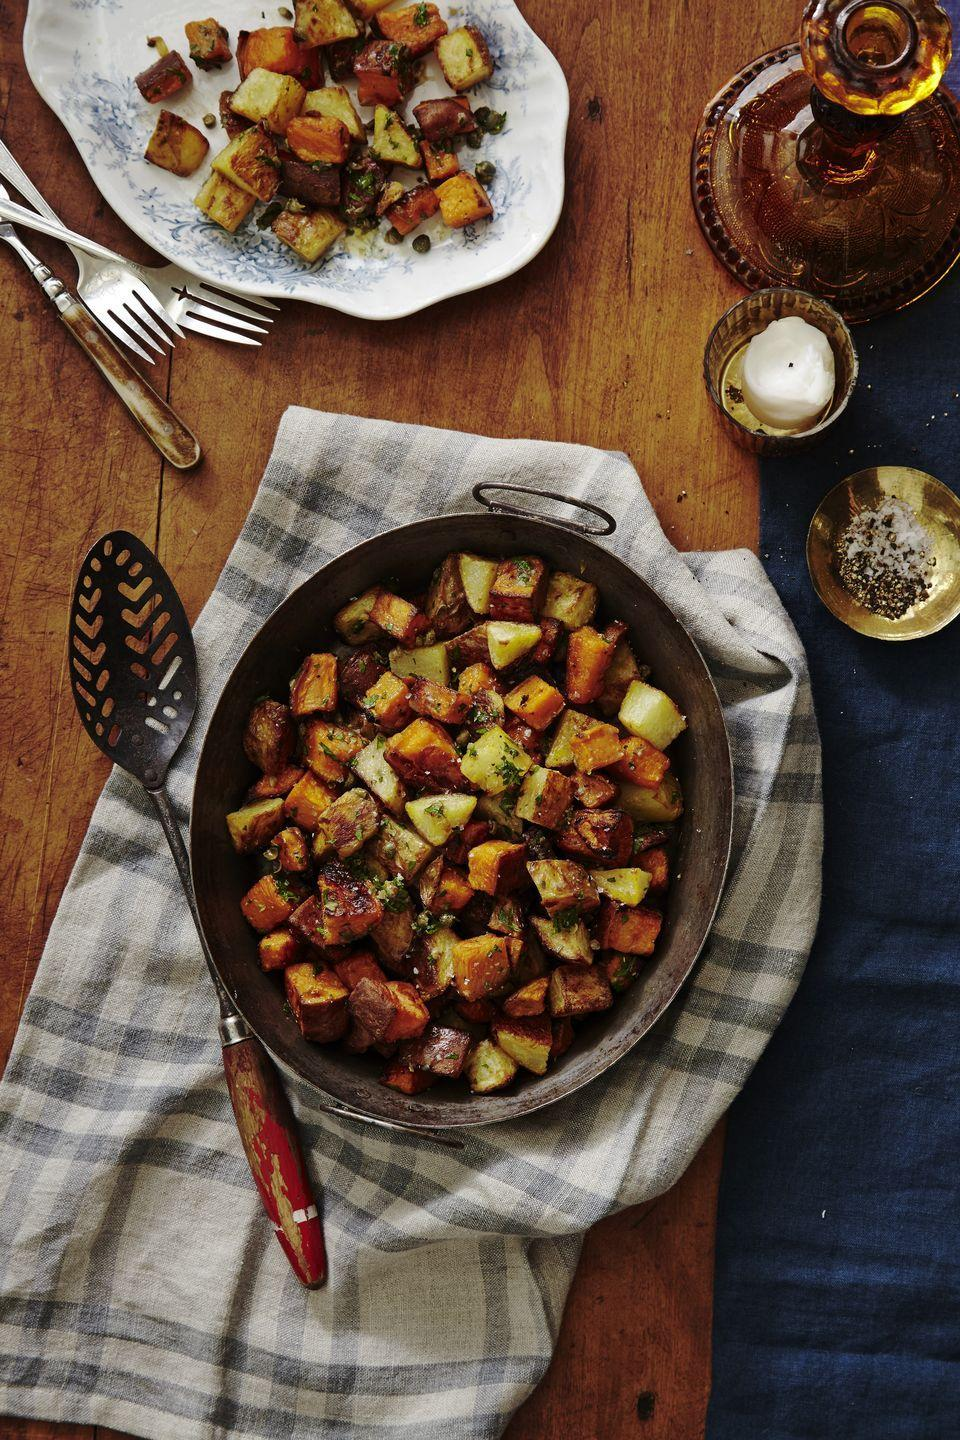 """<p>You don't always have to mash or boil and smash your spuds. Here's proof that they roast up beautifully chopped and tossed with a few key ingredients (sherry vinegar and capers). </p><p><em><a href=""""https://www.goodhousekeeping.com/food-recipes/easy/a34573/crispy-roasted-potatoes-with-caper-vinaigrette/"""" rel=""""nofollow noopener"""" target=""""_blank"""" data-ylk=""""slk:Get the recipe for Crispy Roasted Potatoes with Caper Vinaigrette »"""" class=""""link rapid-noclick-resp"""">Get the recipe for Crispy Roasted Potatoes with Caper Vinaigrette » </a></em></p>"""